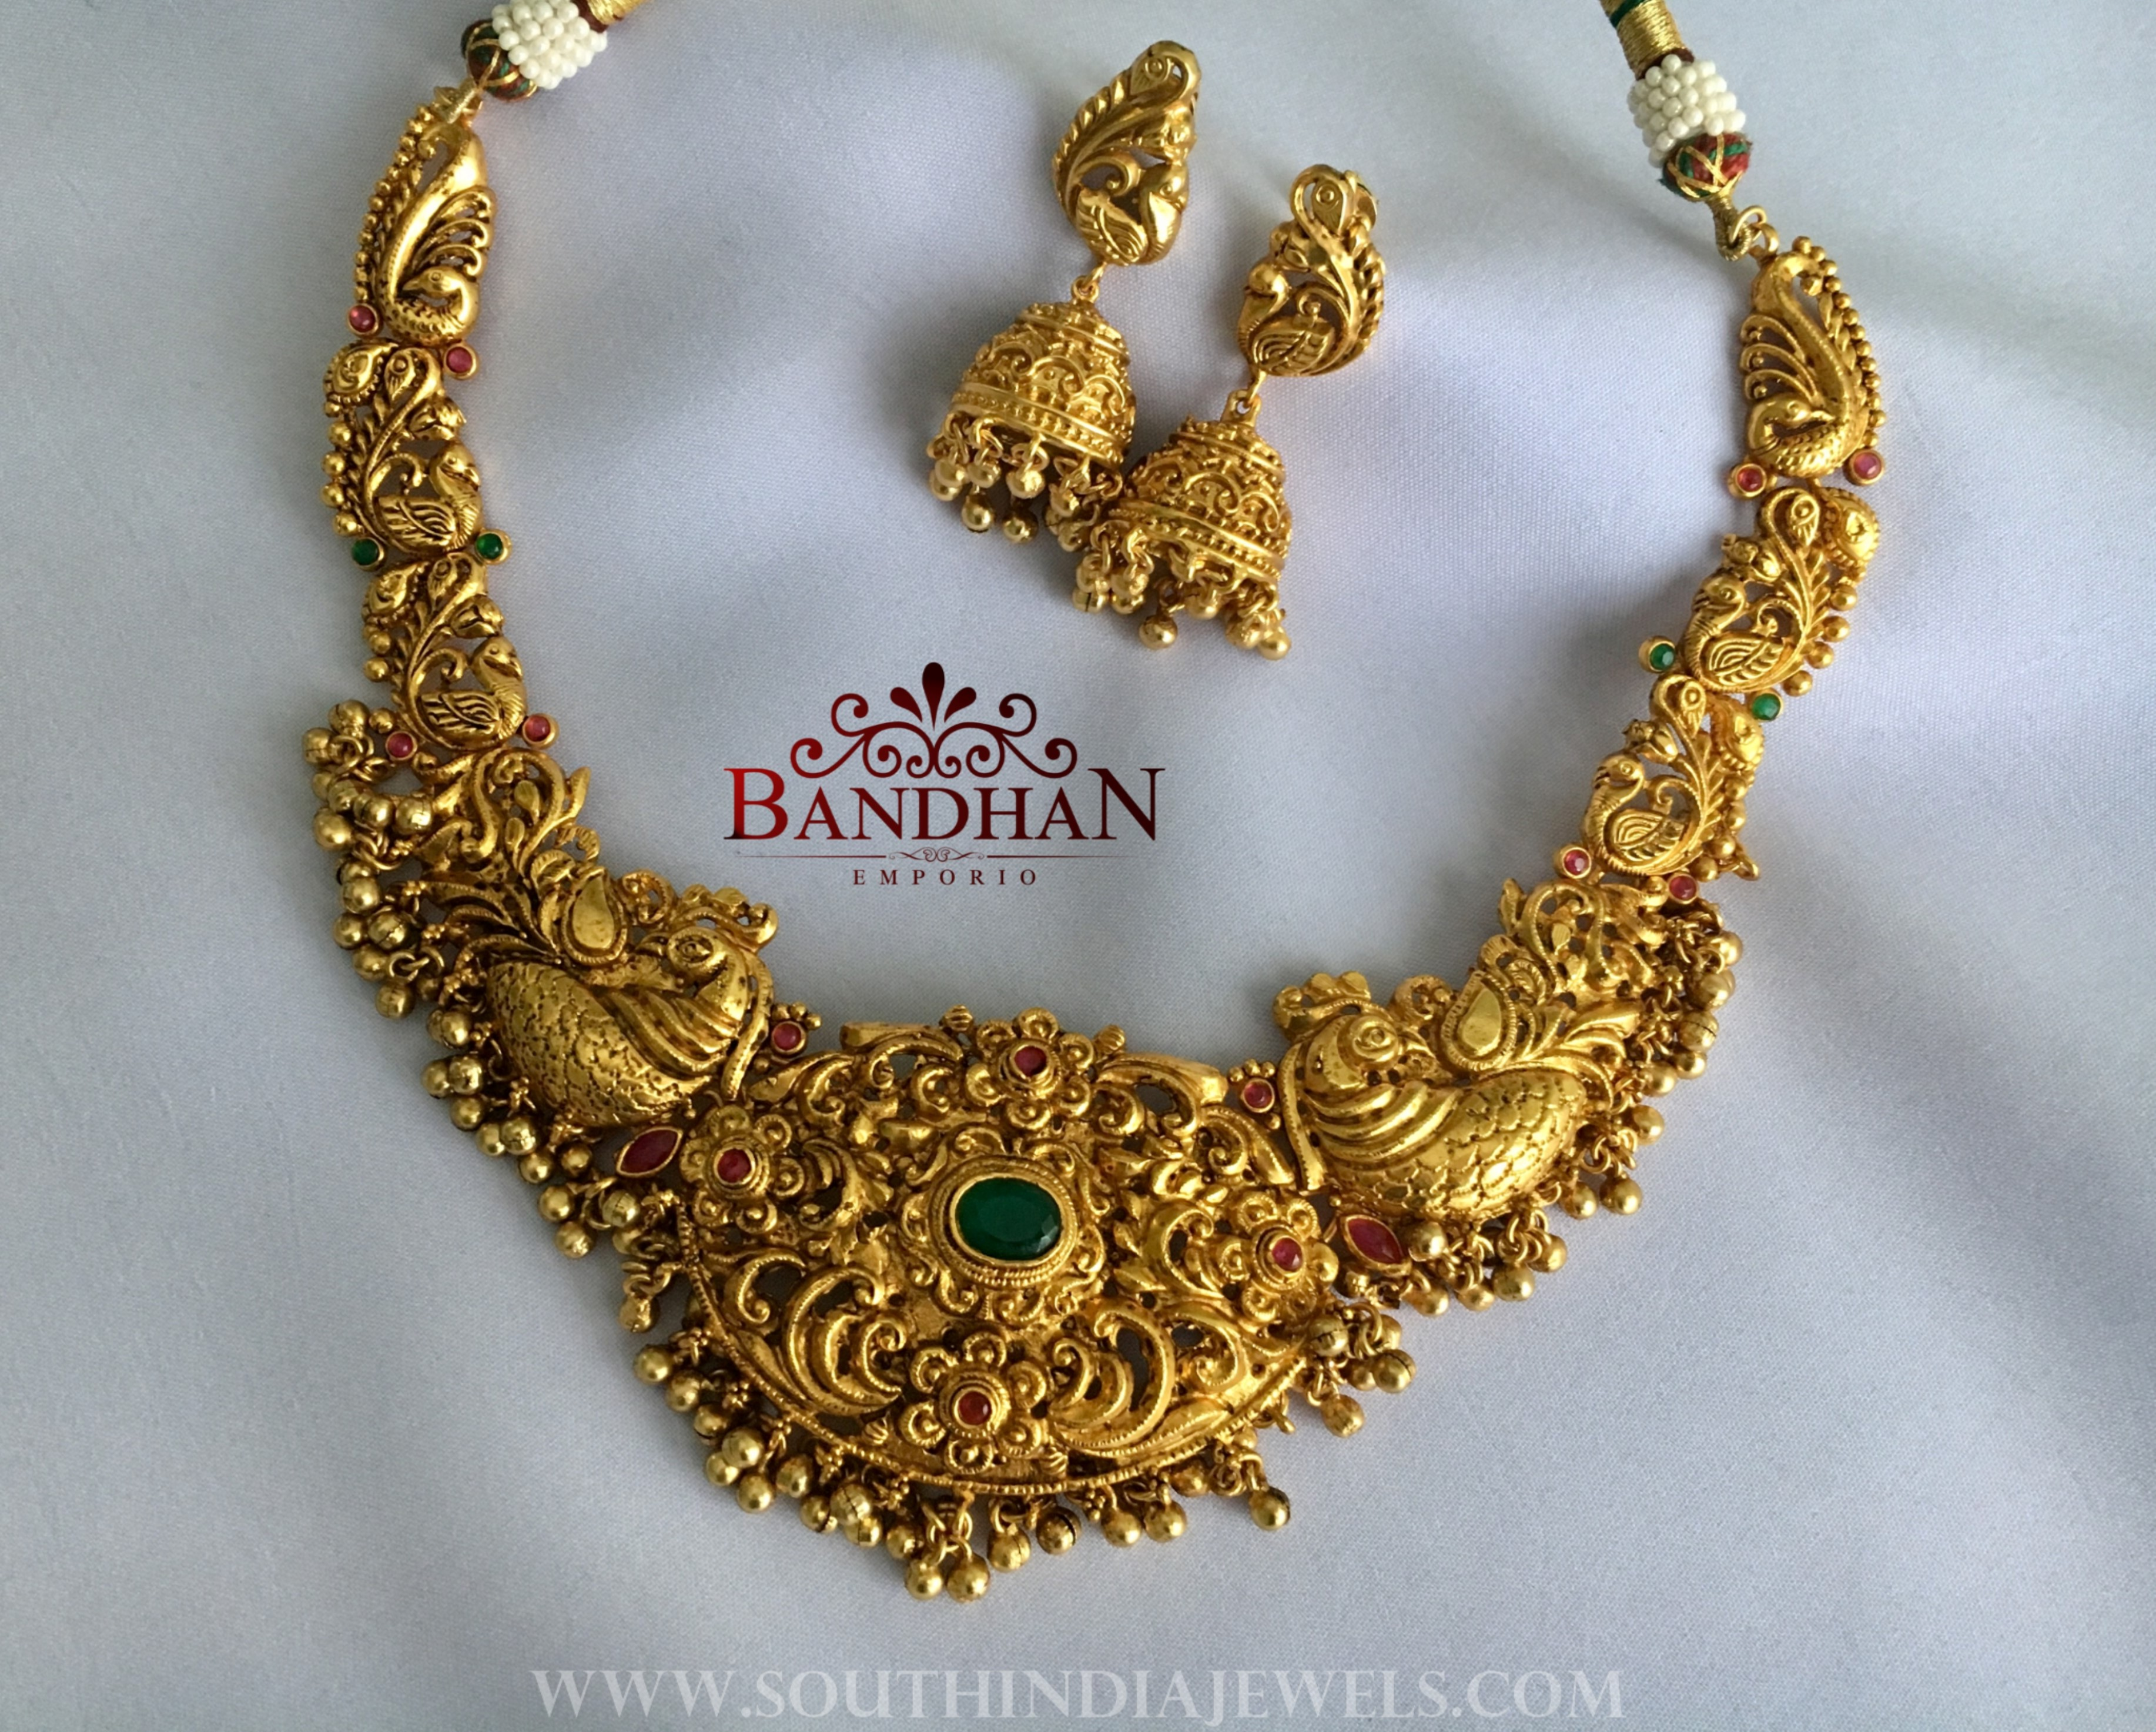 Bandhan Emporio Jewellery Designs